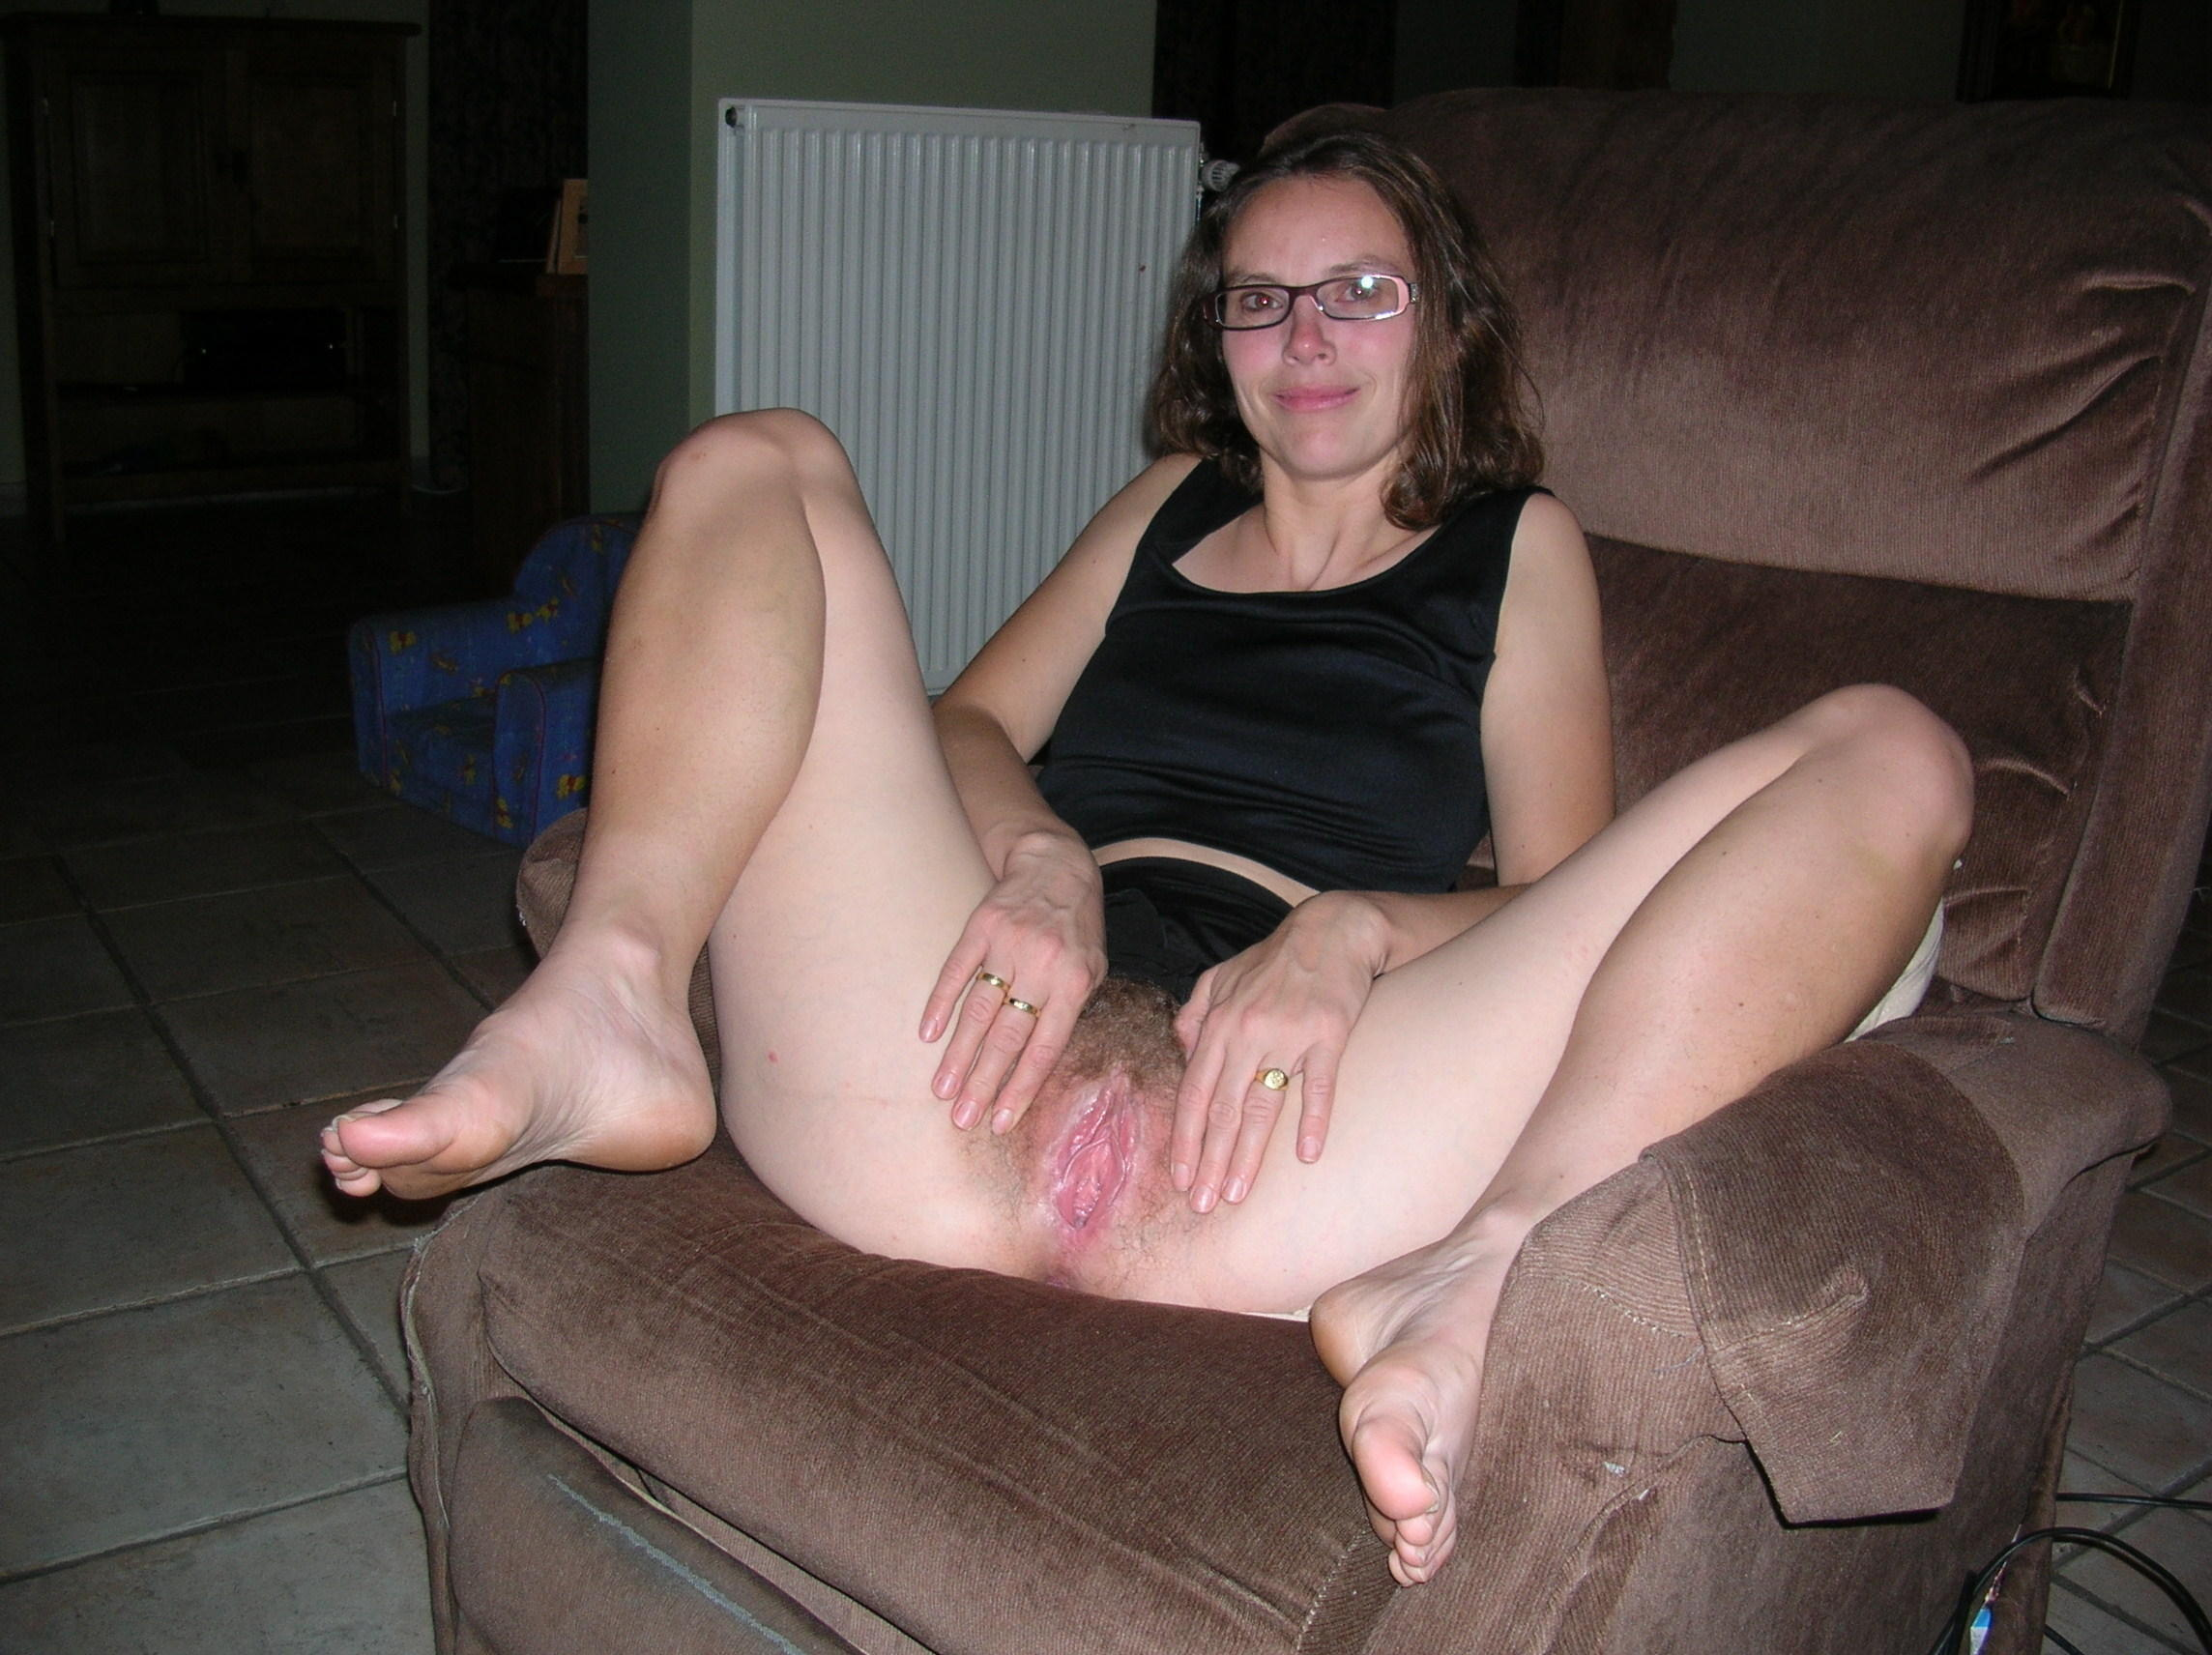 housewife-pussy-pictures